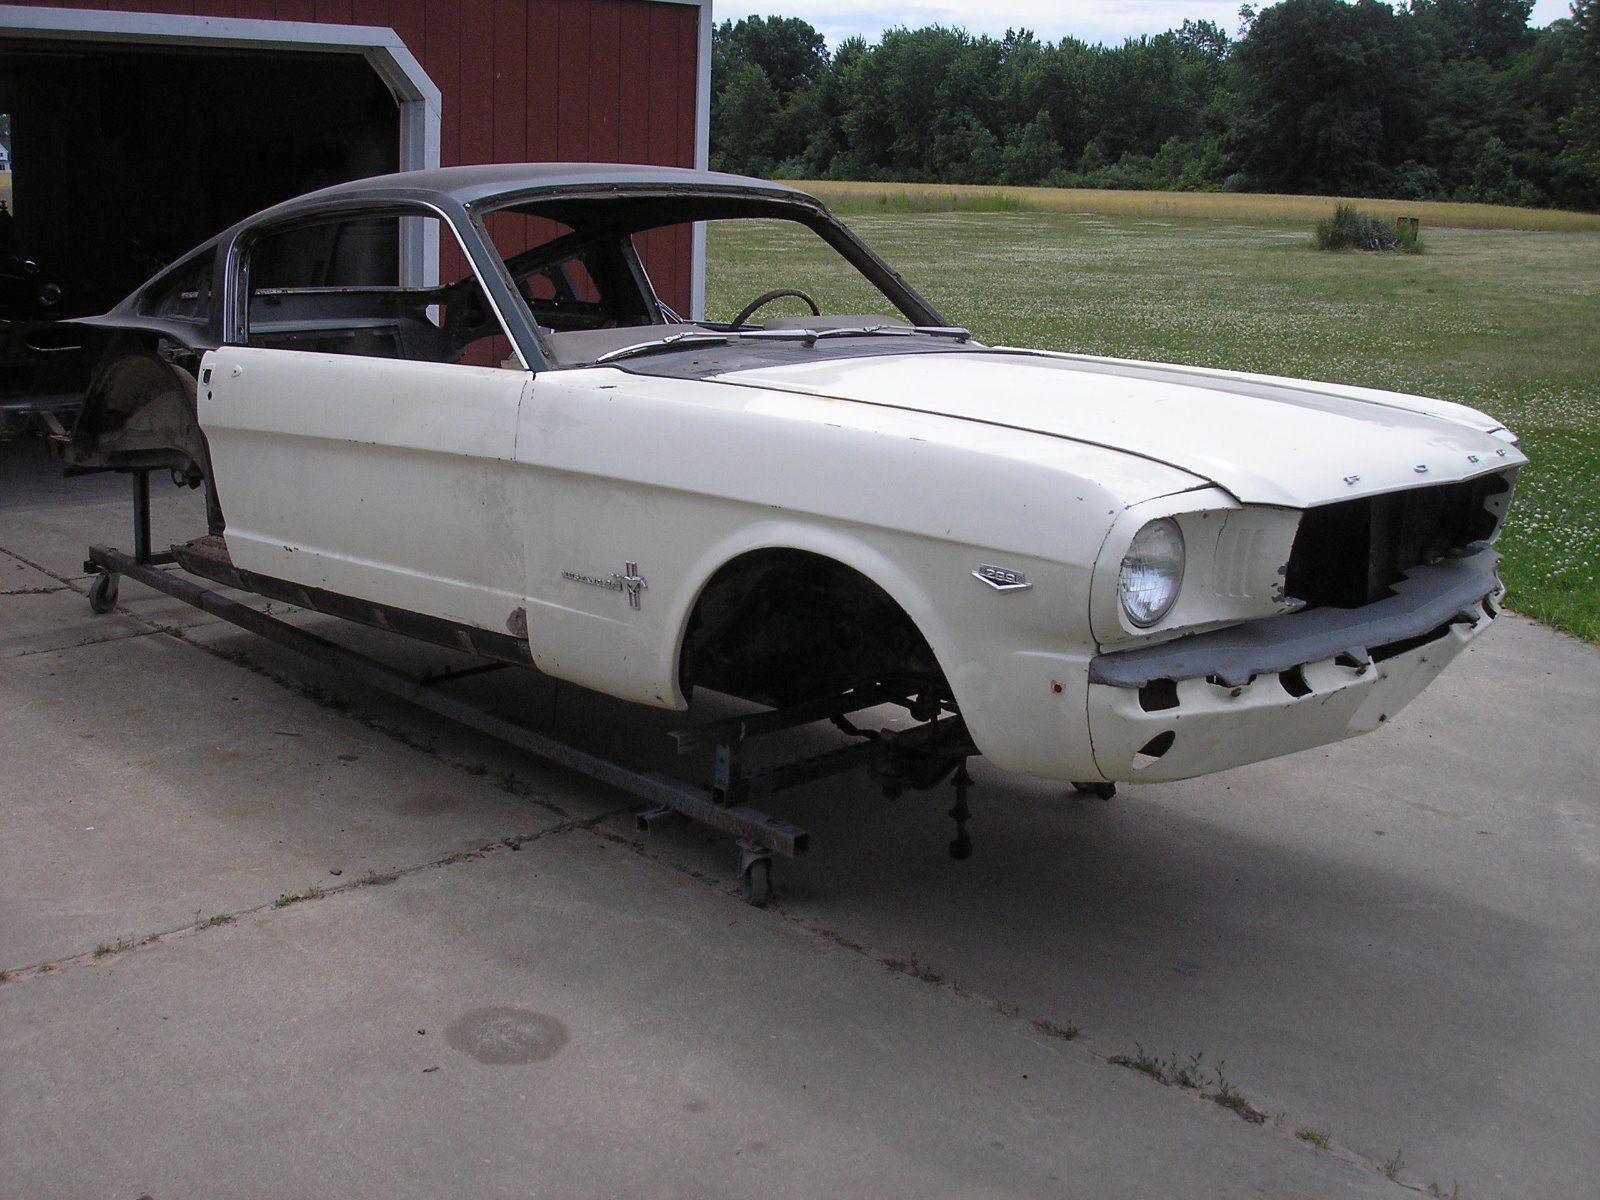 Car Brand Auctioned Ford Mustang 1965 Mustang Fastback Project Car Low Reserve Auction Cars Mustang Fastback Ford Mustang 1965 Mustang